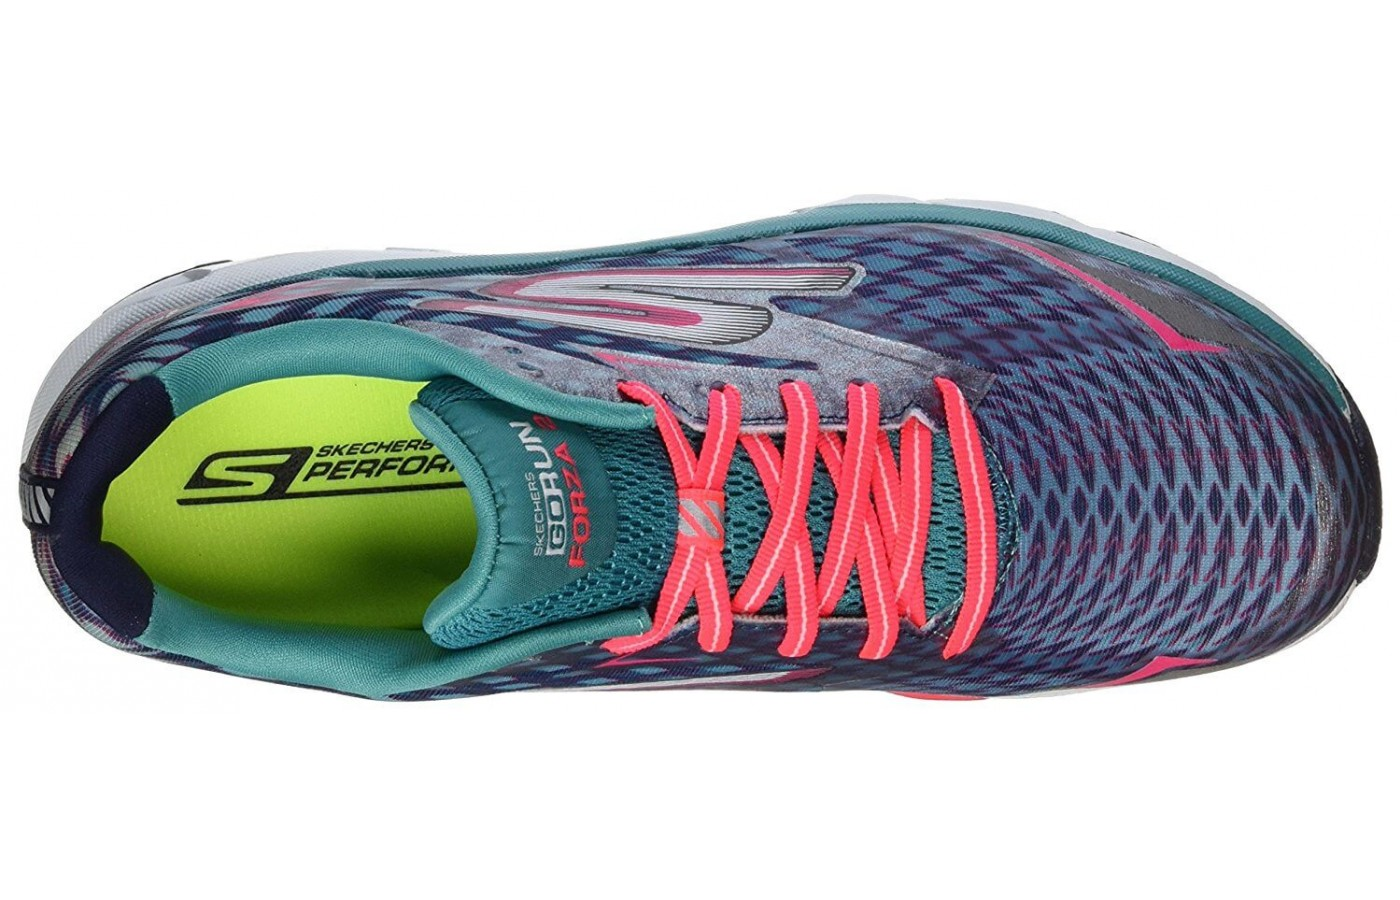 The Skechers GoRUN Forza 2 has a new air mesh upper